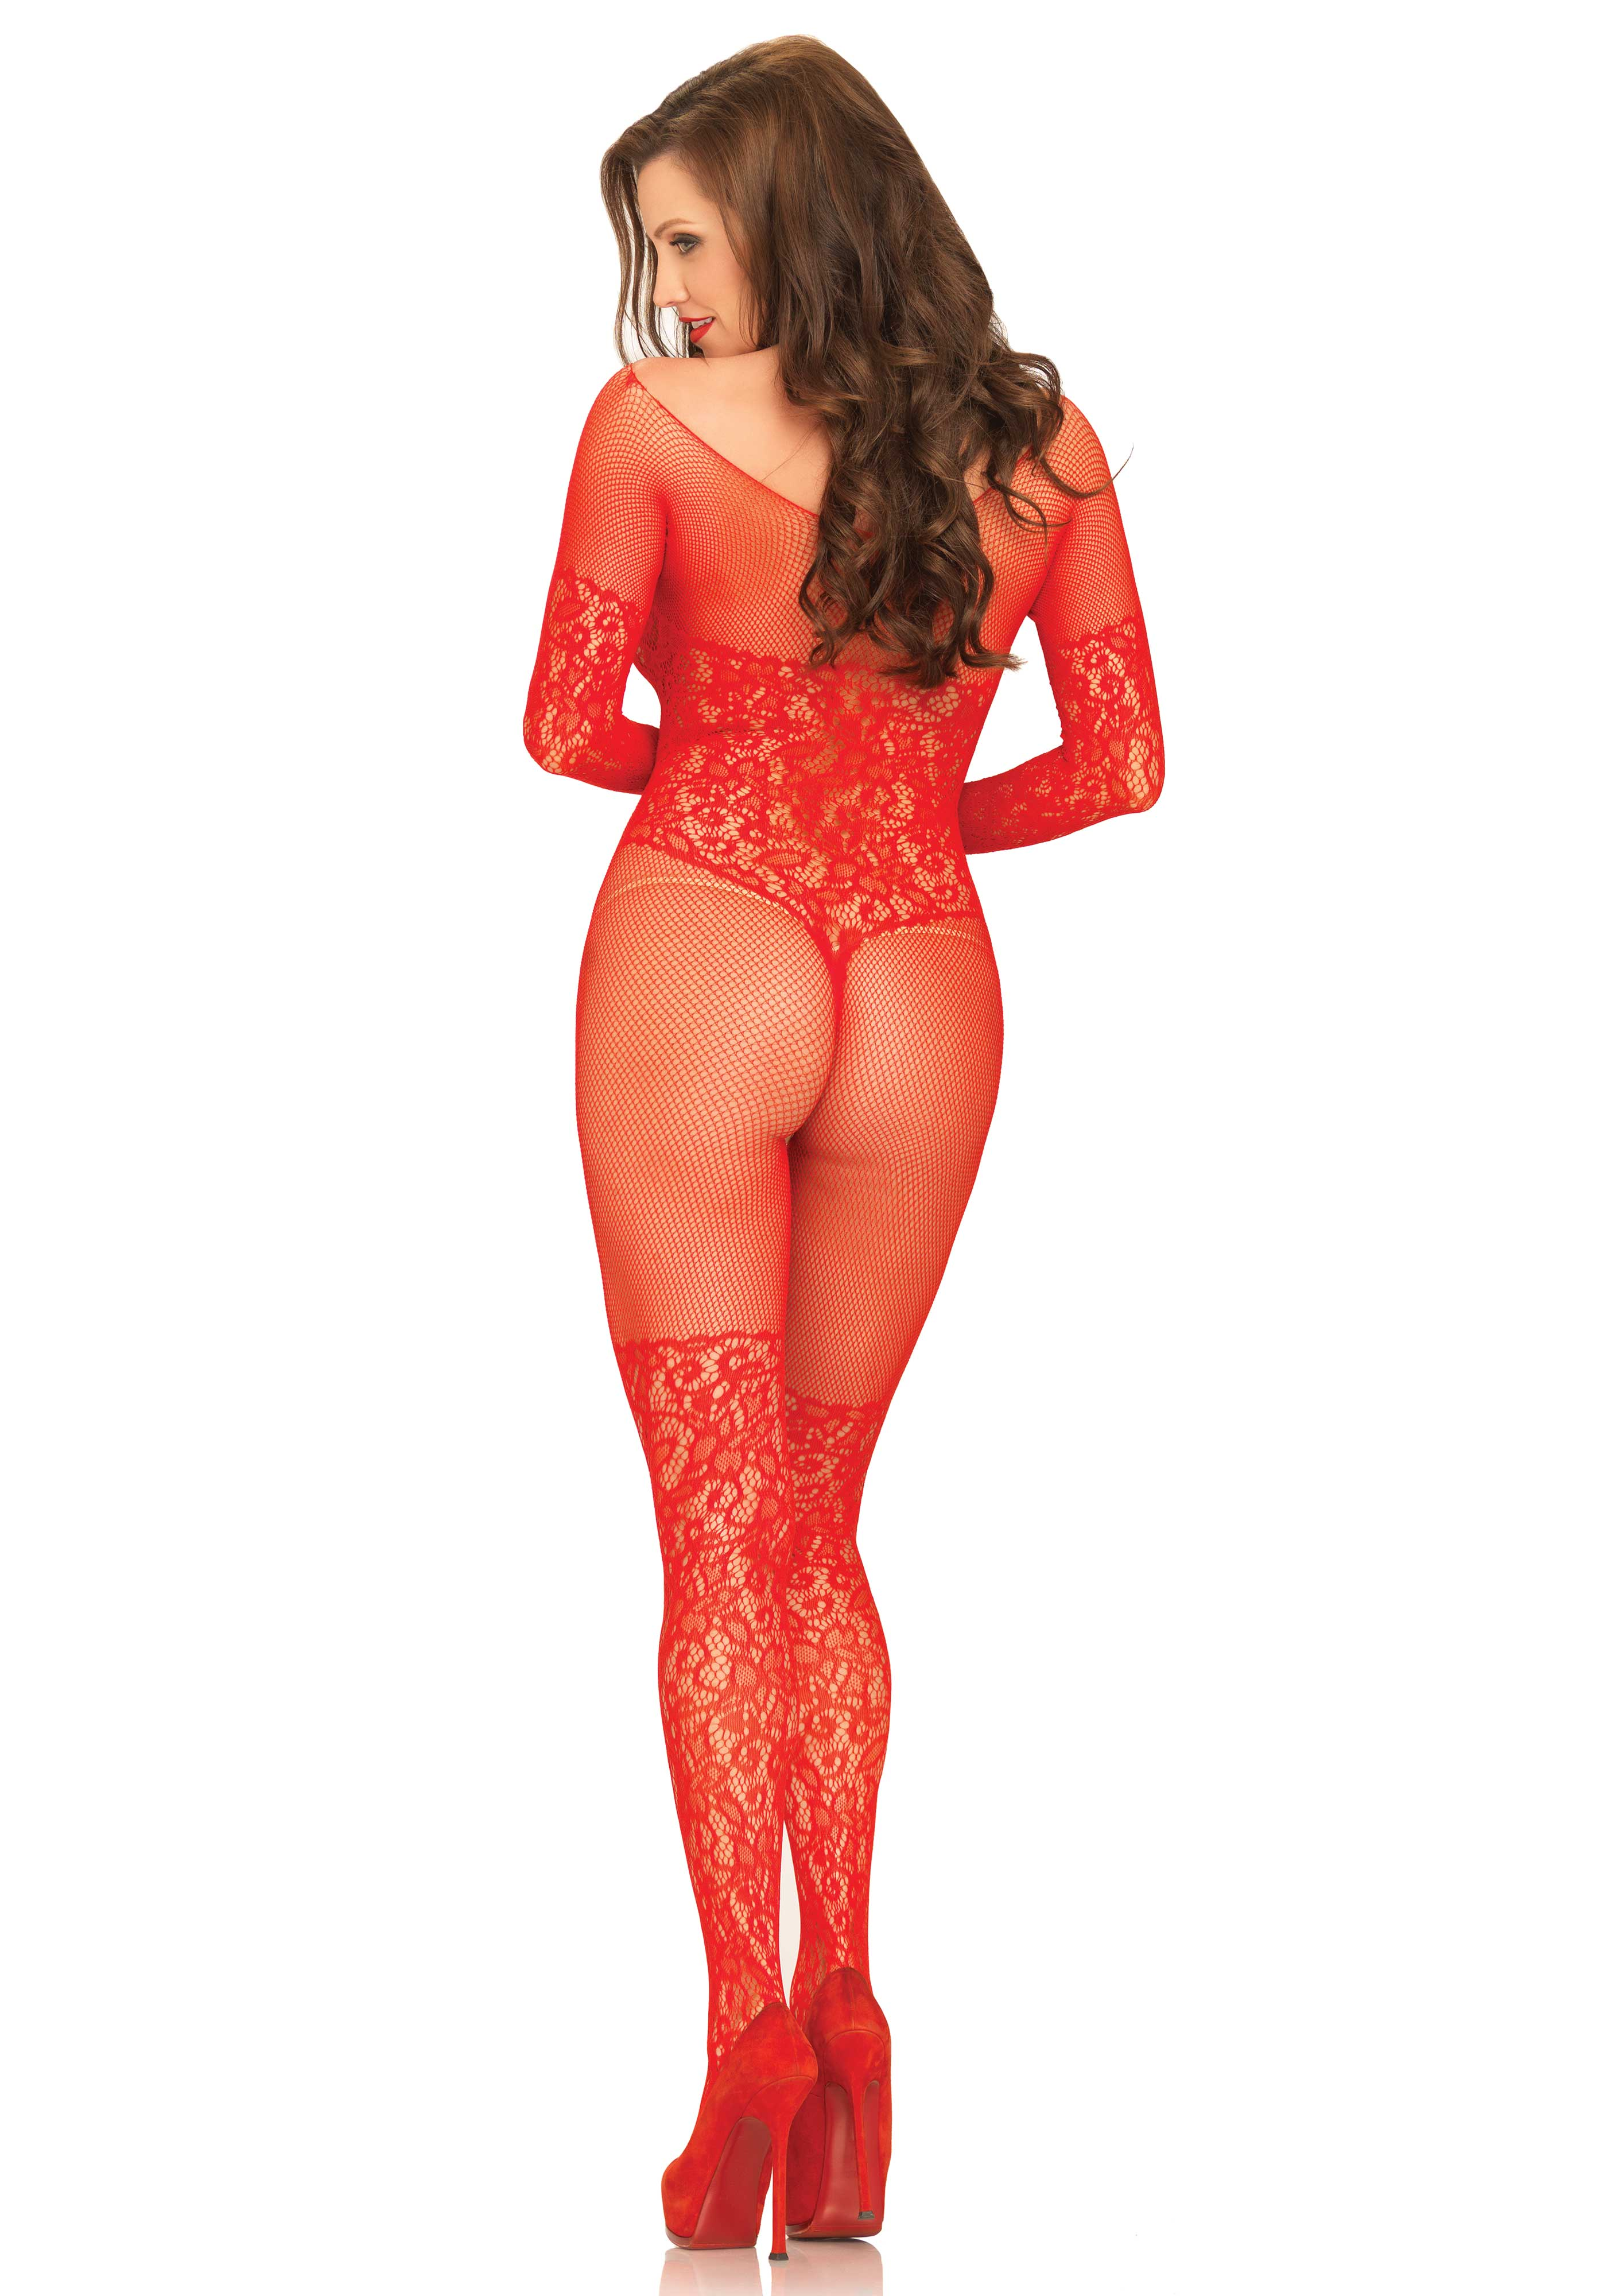 51c6ab0828 Vine lace and net long sleeved crotchless bodystocking.